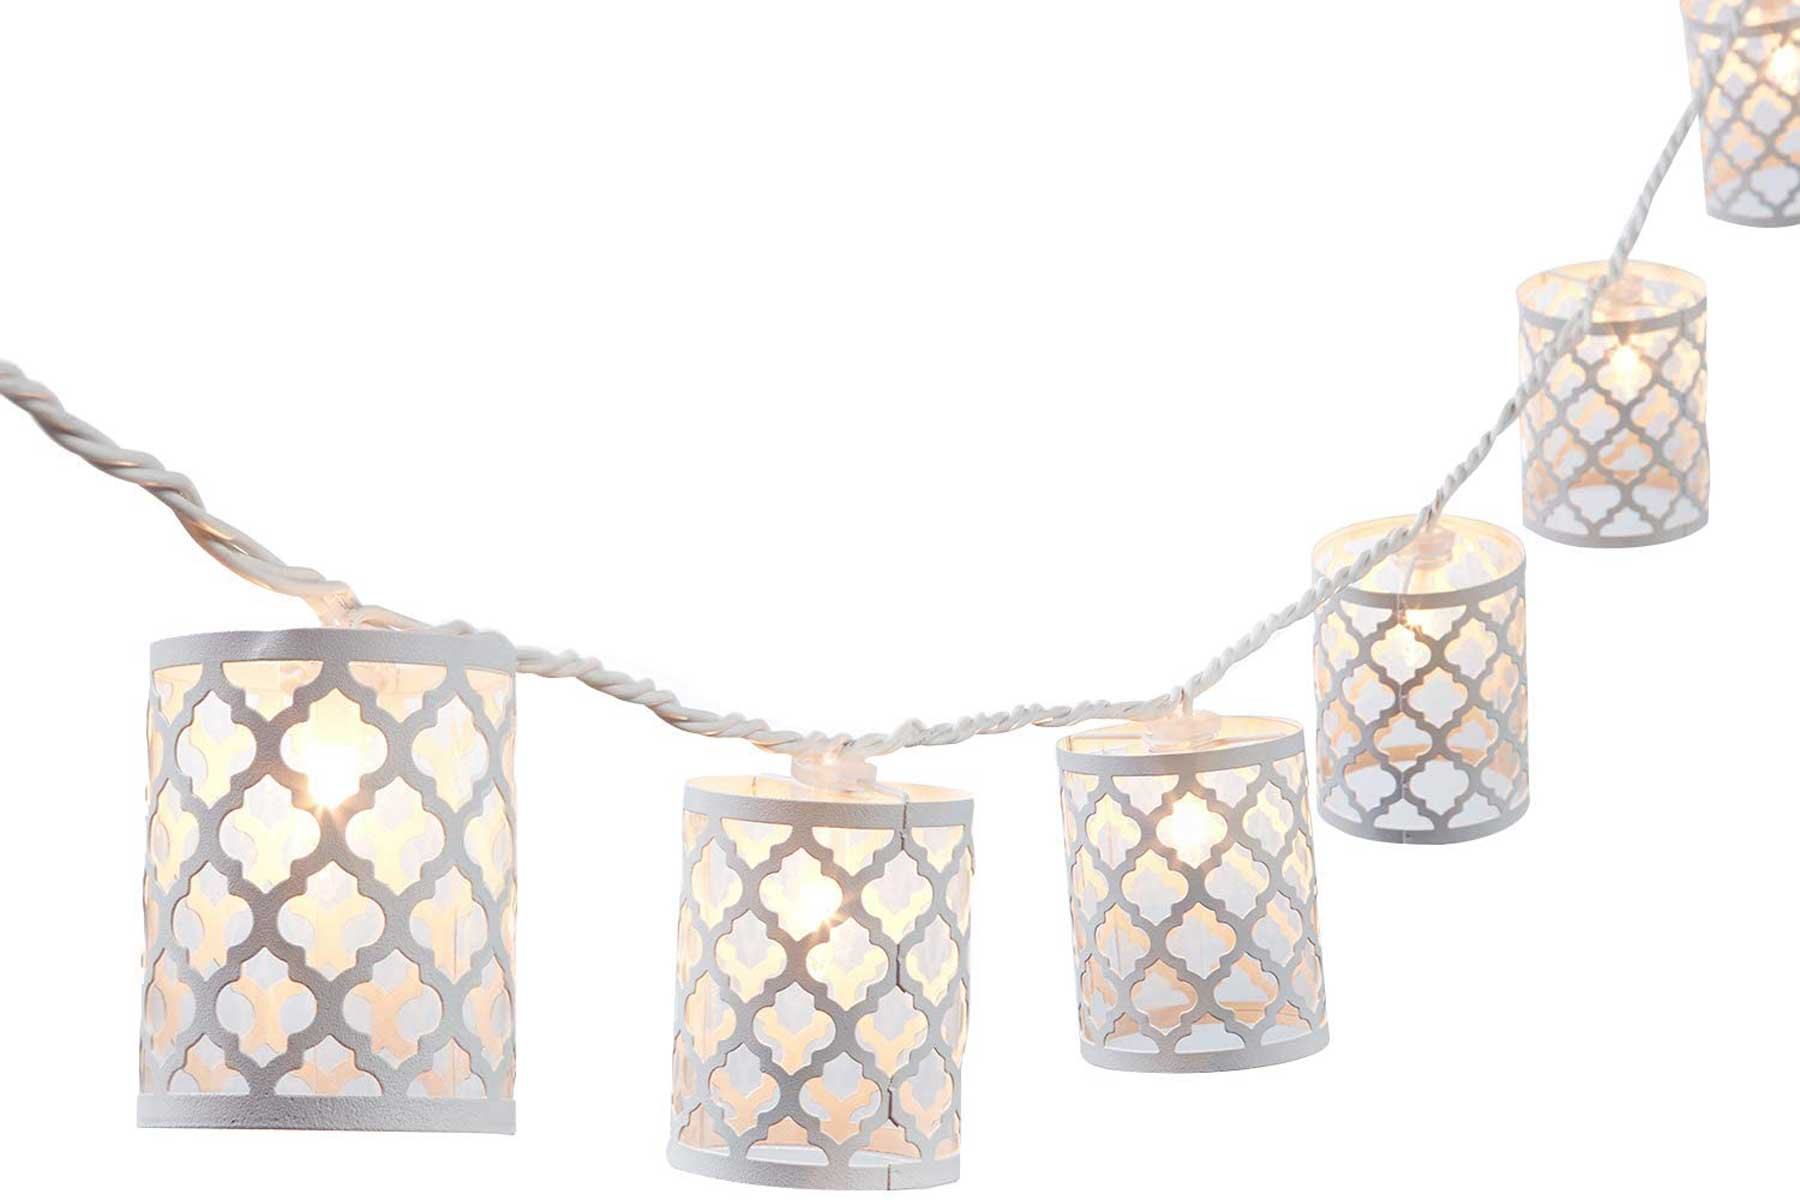 NIOSTA white metal lantern string lights